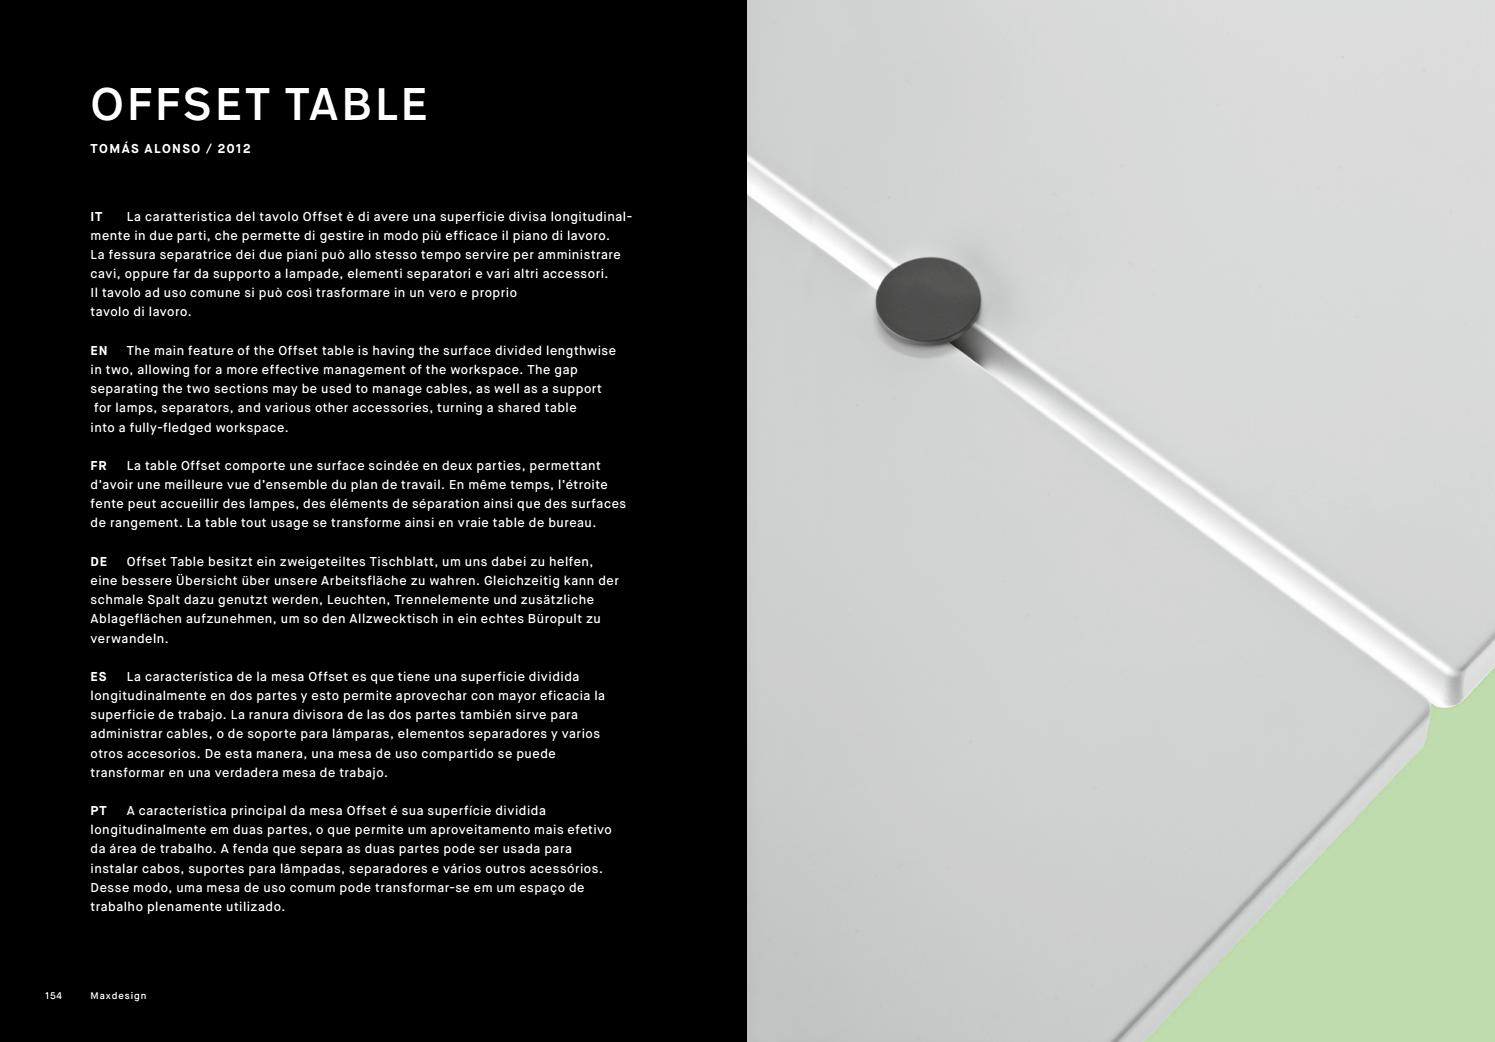 Transformer Un Plan De Travail En Table Maxdesign Offset Table By P4design Issuu